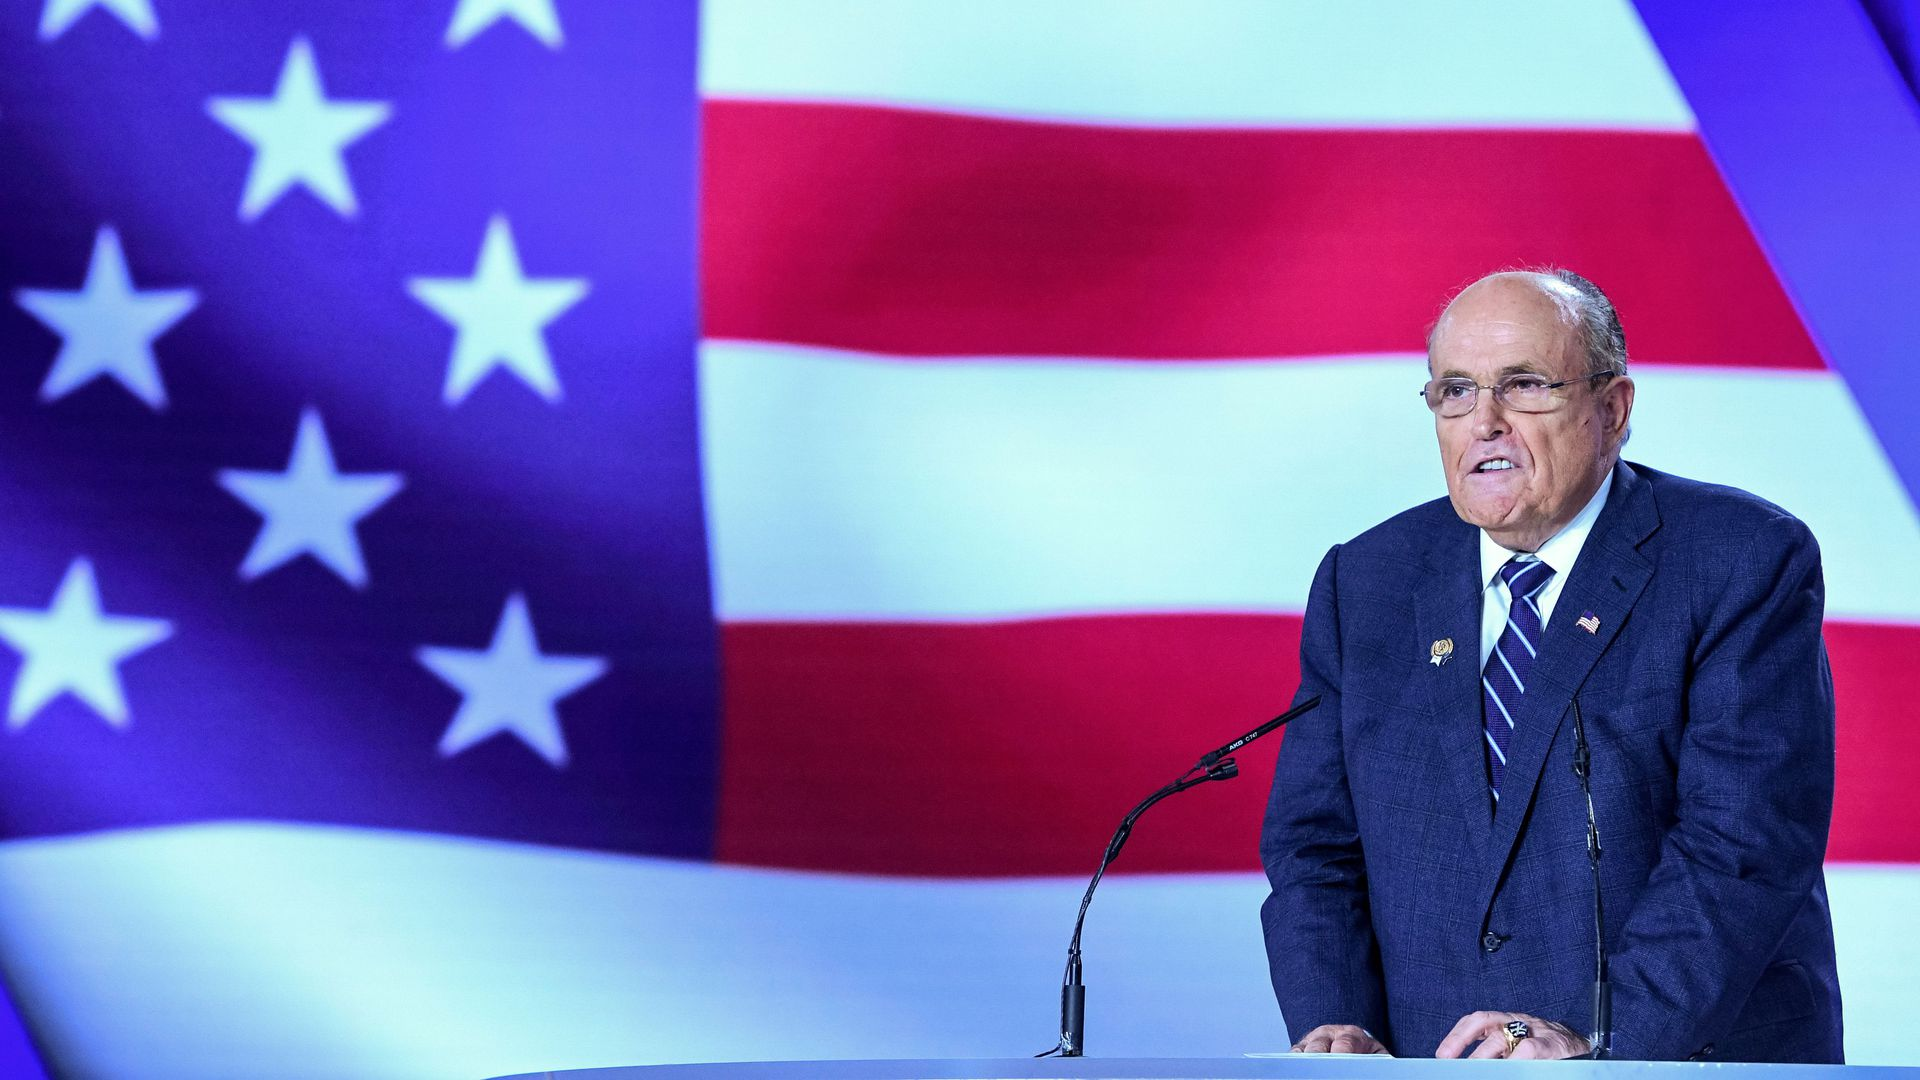 Giuliani says he was paid $500,000 to work for indicted associate's firm Fraud Guarantee